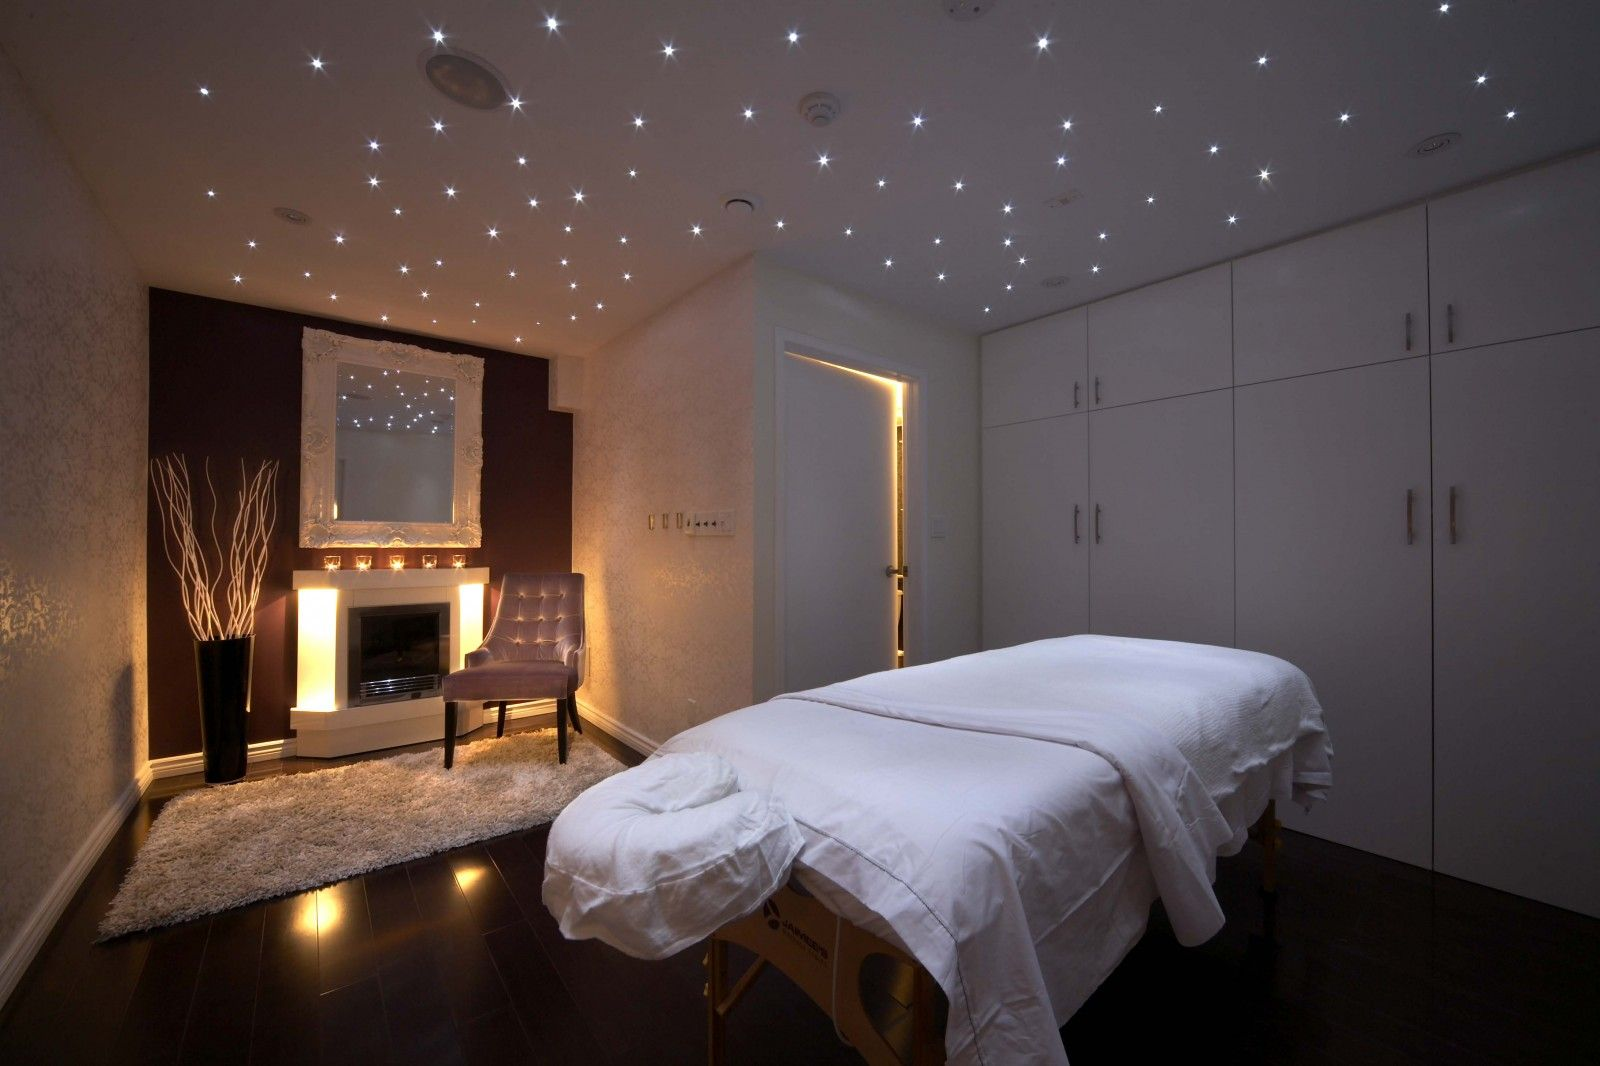 Pearl spa massage room interior design toronto for Interior room decoration